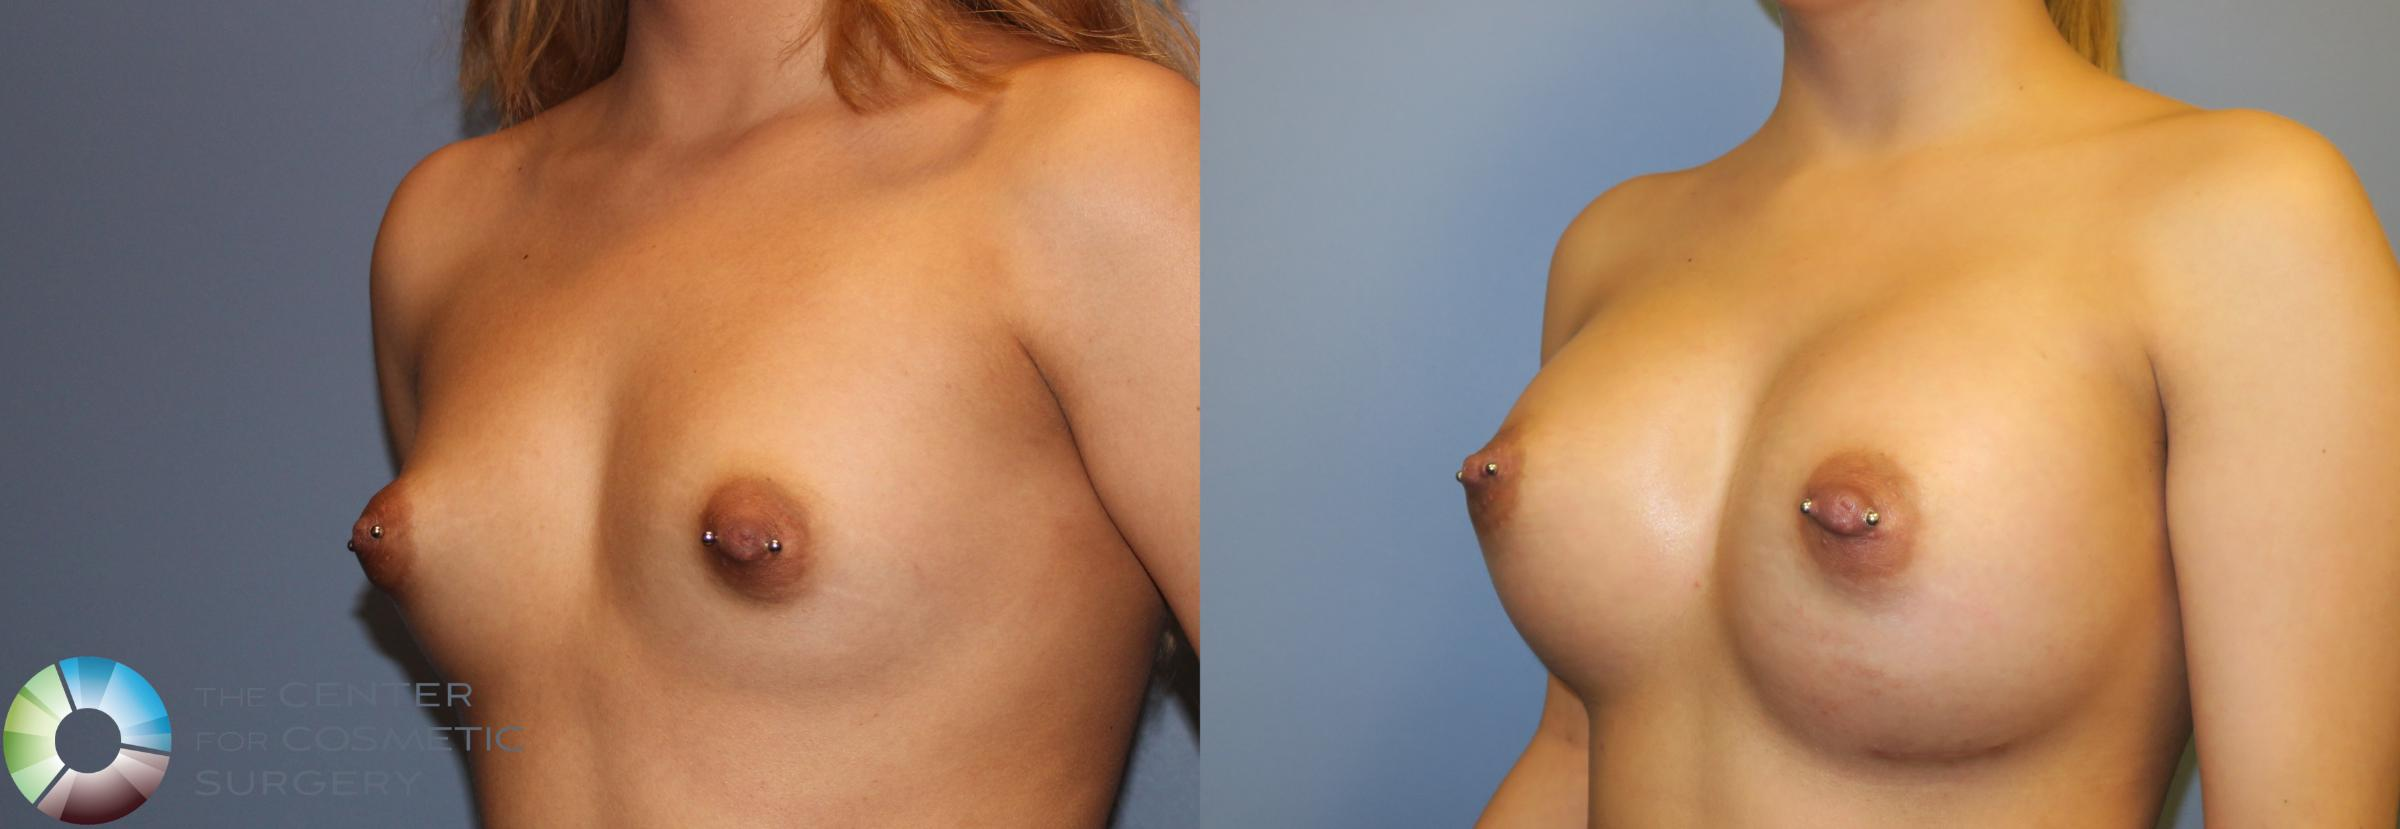 Breast Augmentation Case 965 Before & After View #2 | Golden, CO | The Center for Cosmetic Surgery